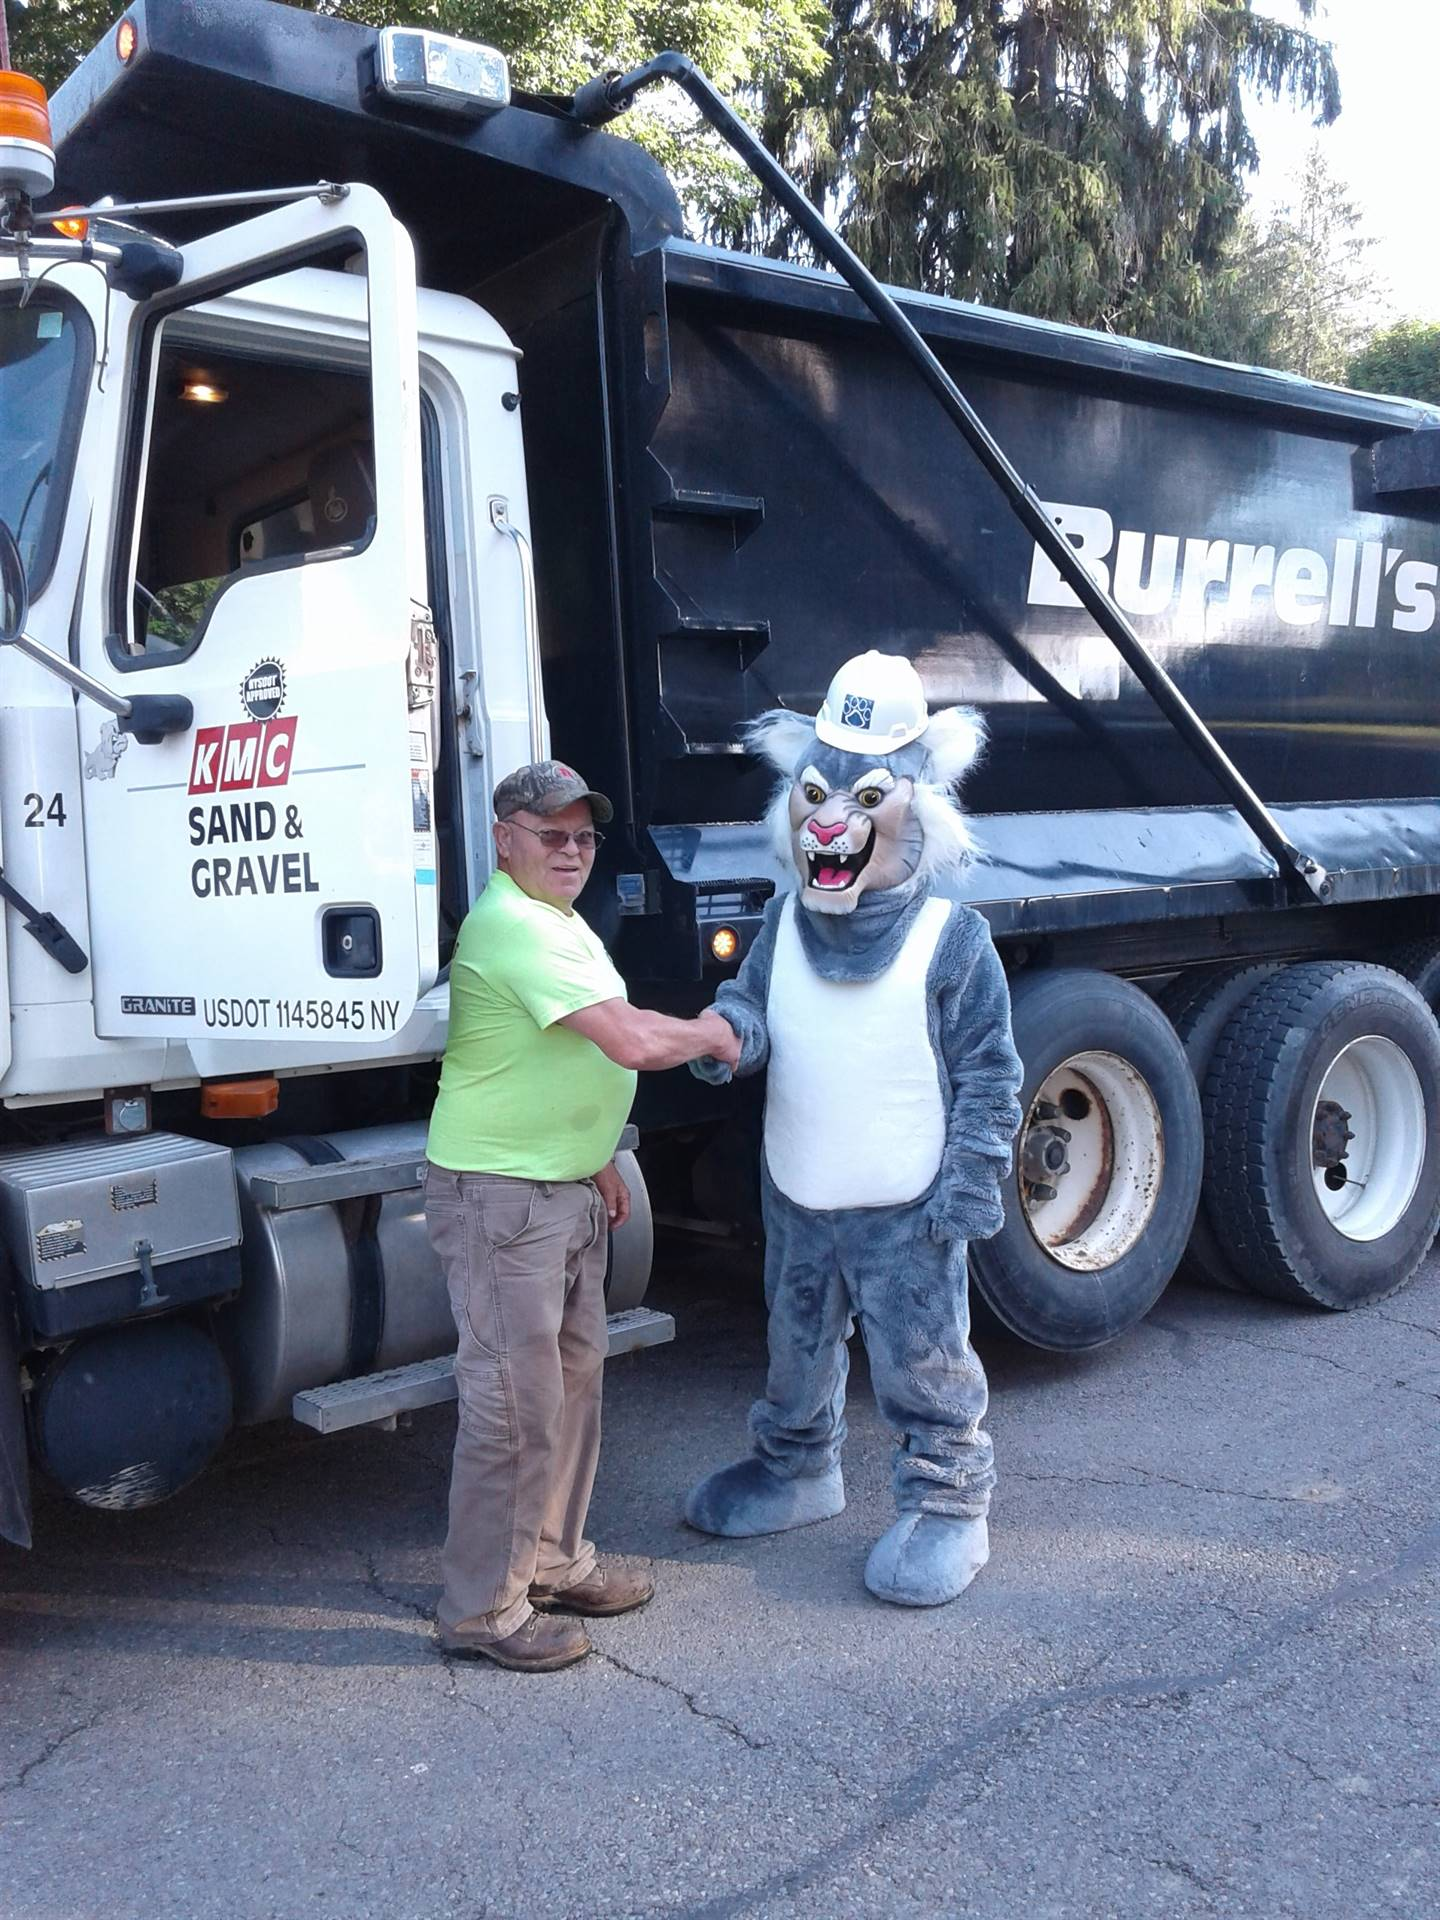 Felix shaking hands with the Burrell's dump truck driver